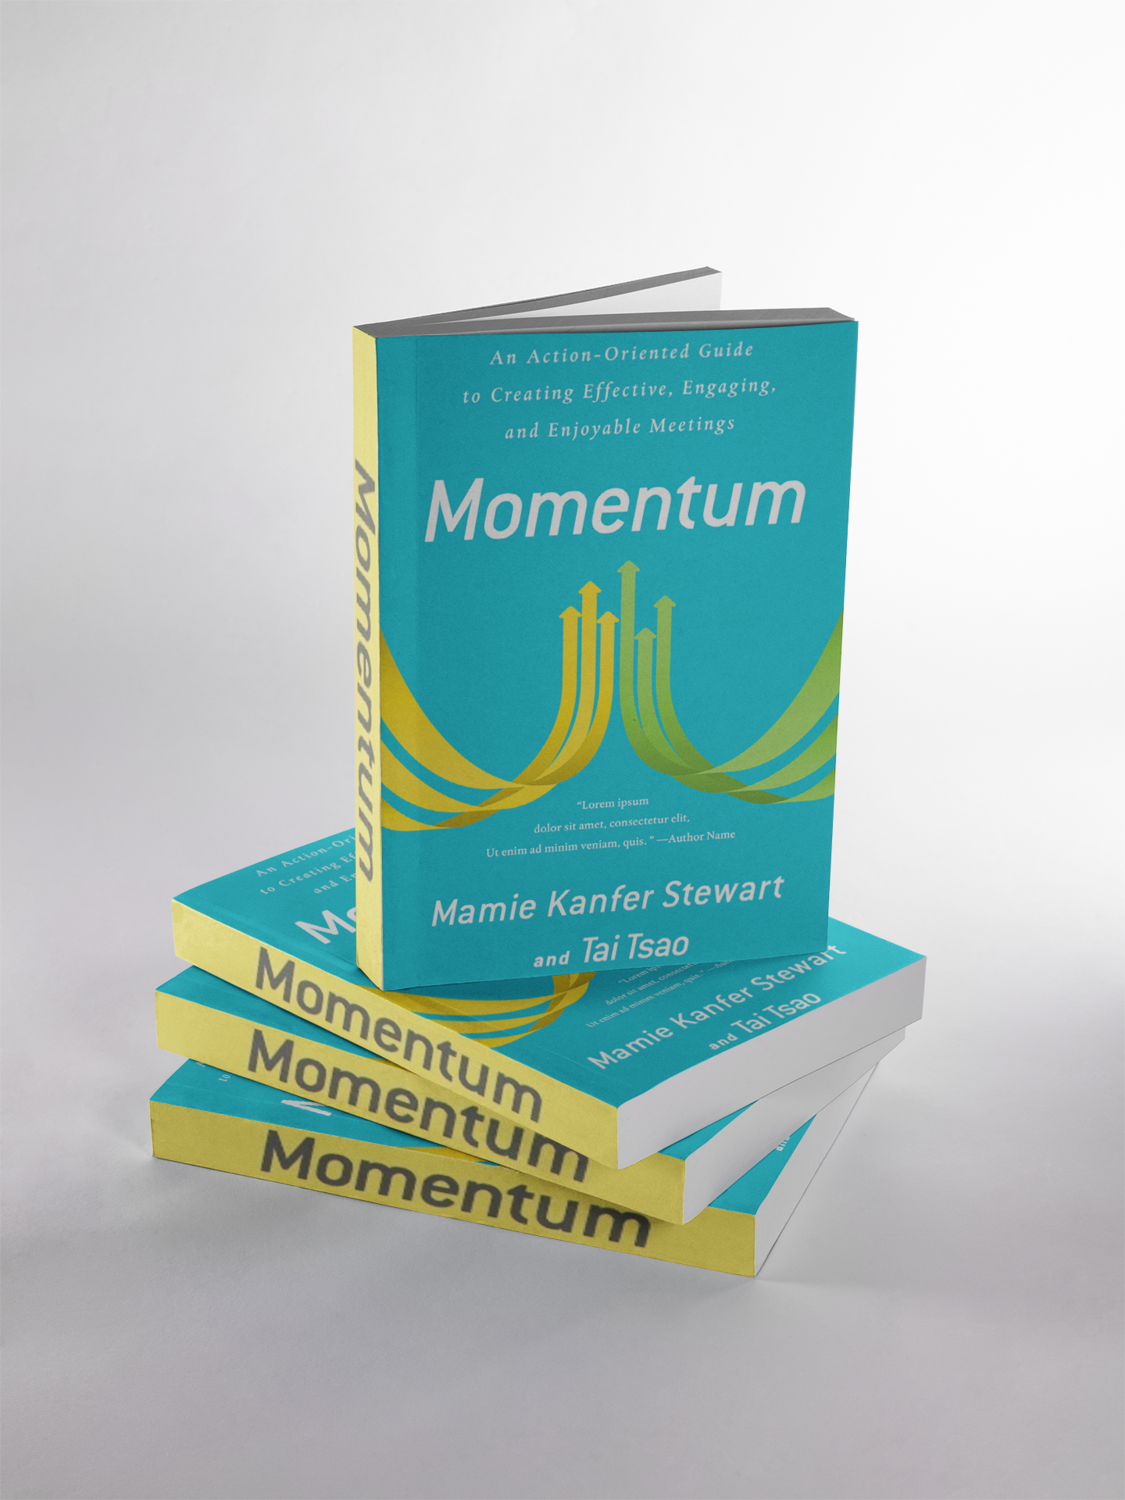 Momentum: Creating Effective, Engaging and Enjoyable Meetings